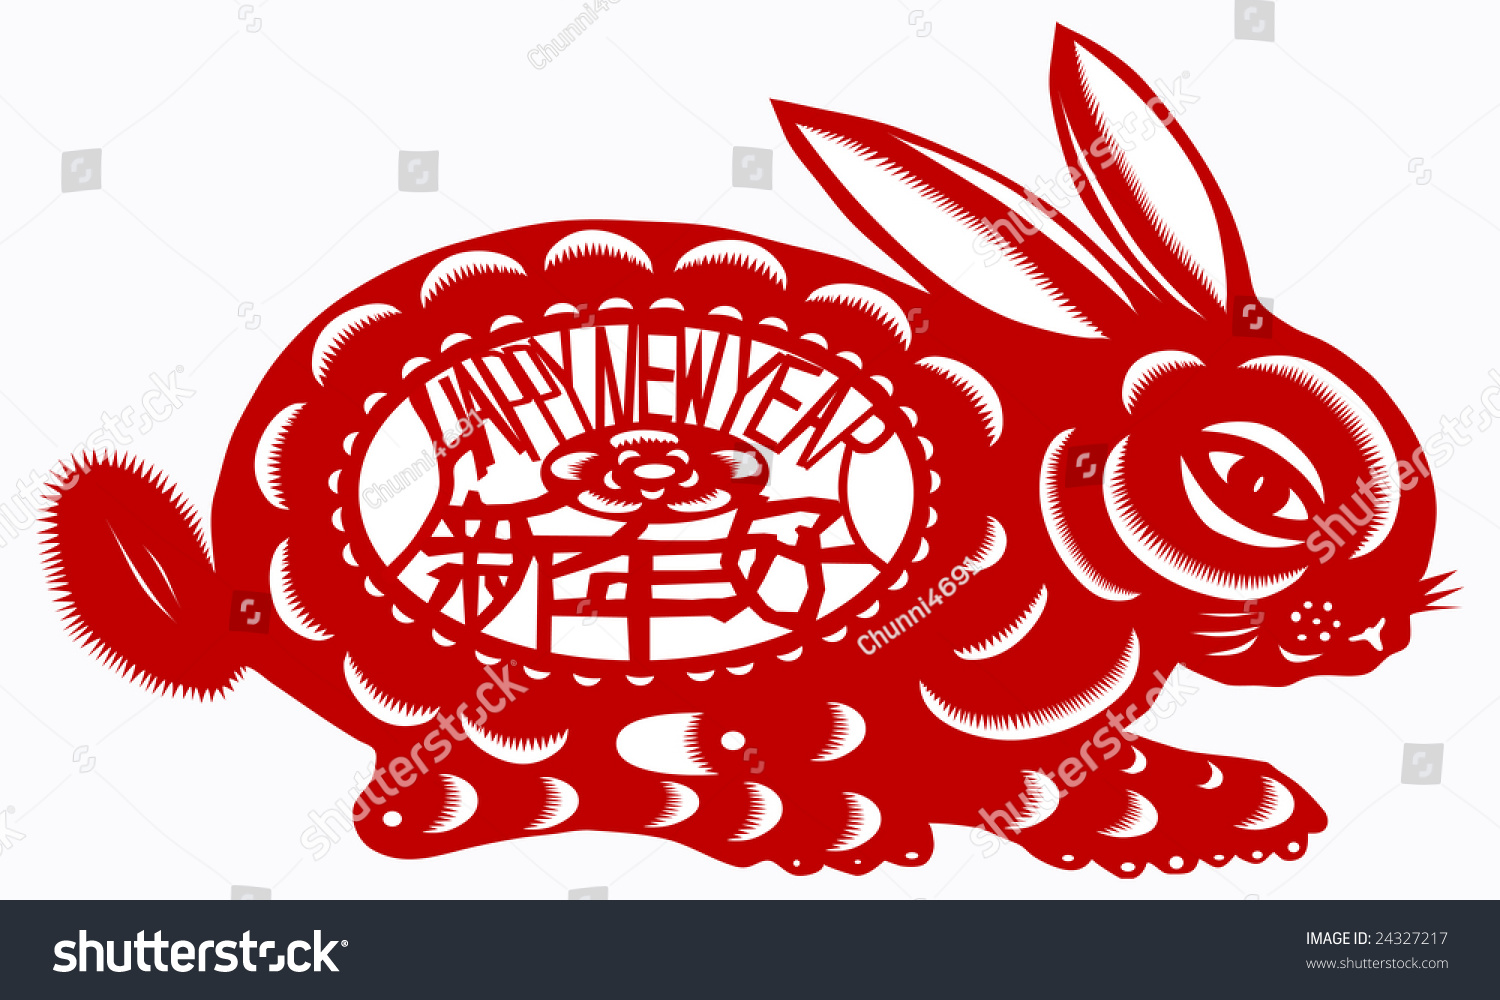 How To Say Rabbit In Chinese